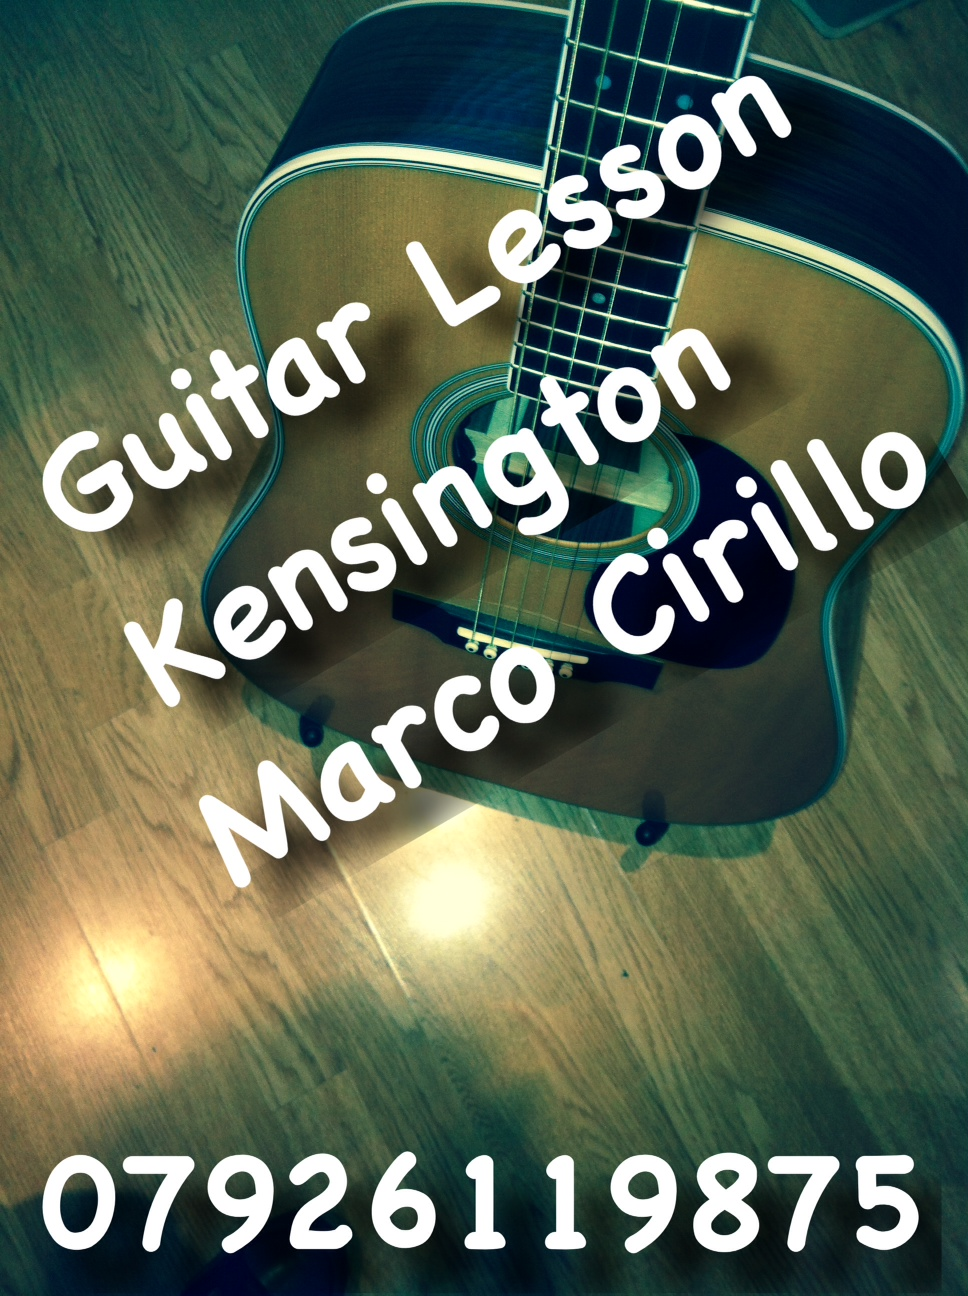 Guitar Lesson Kensington - Electric, Acoustic and Classical Guitar Lesson by Marco Cirillo Qualified Guitar Teacher based in London.